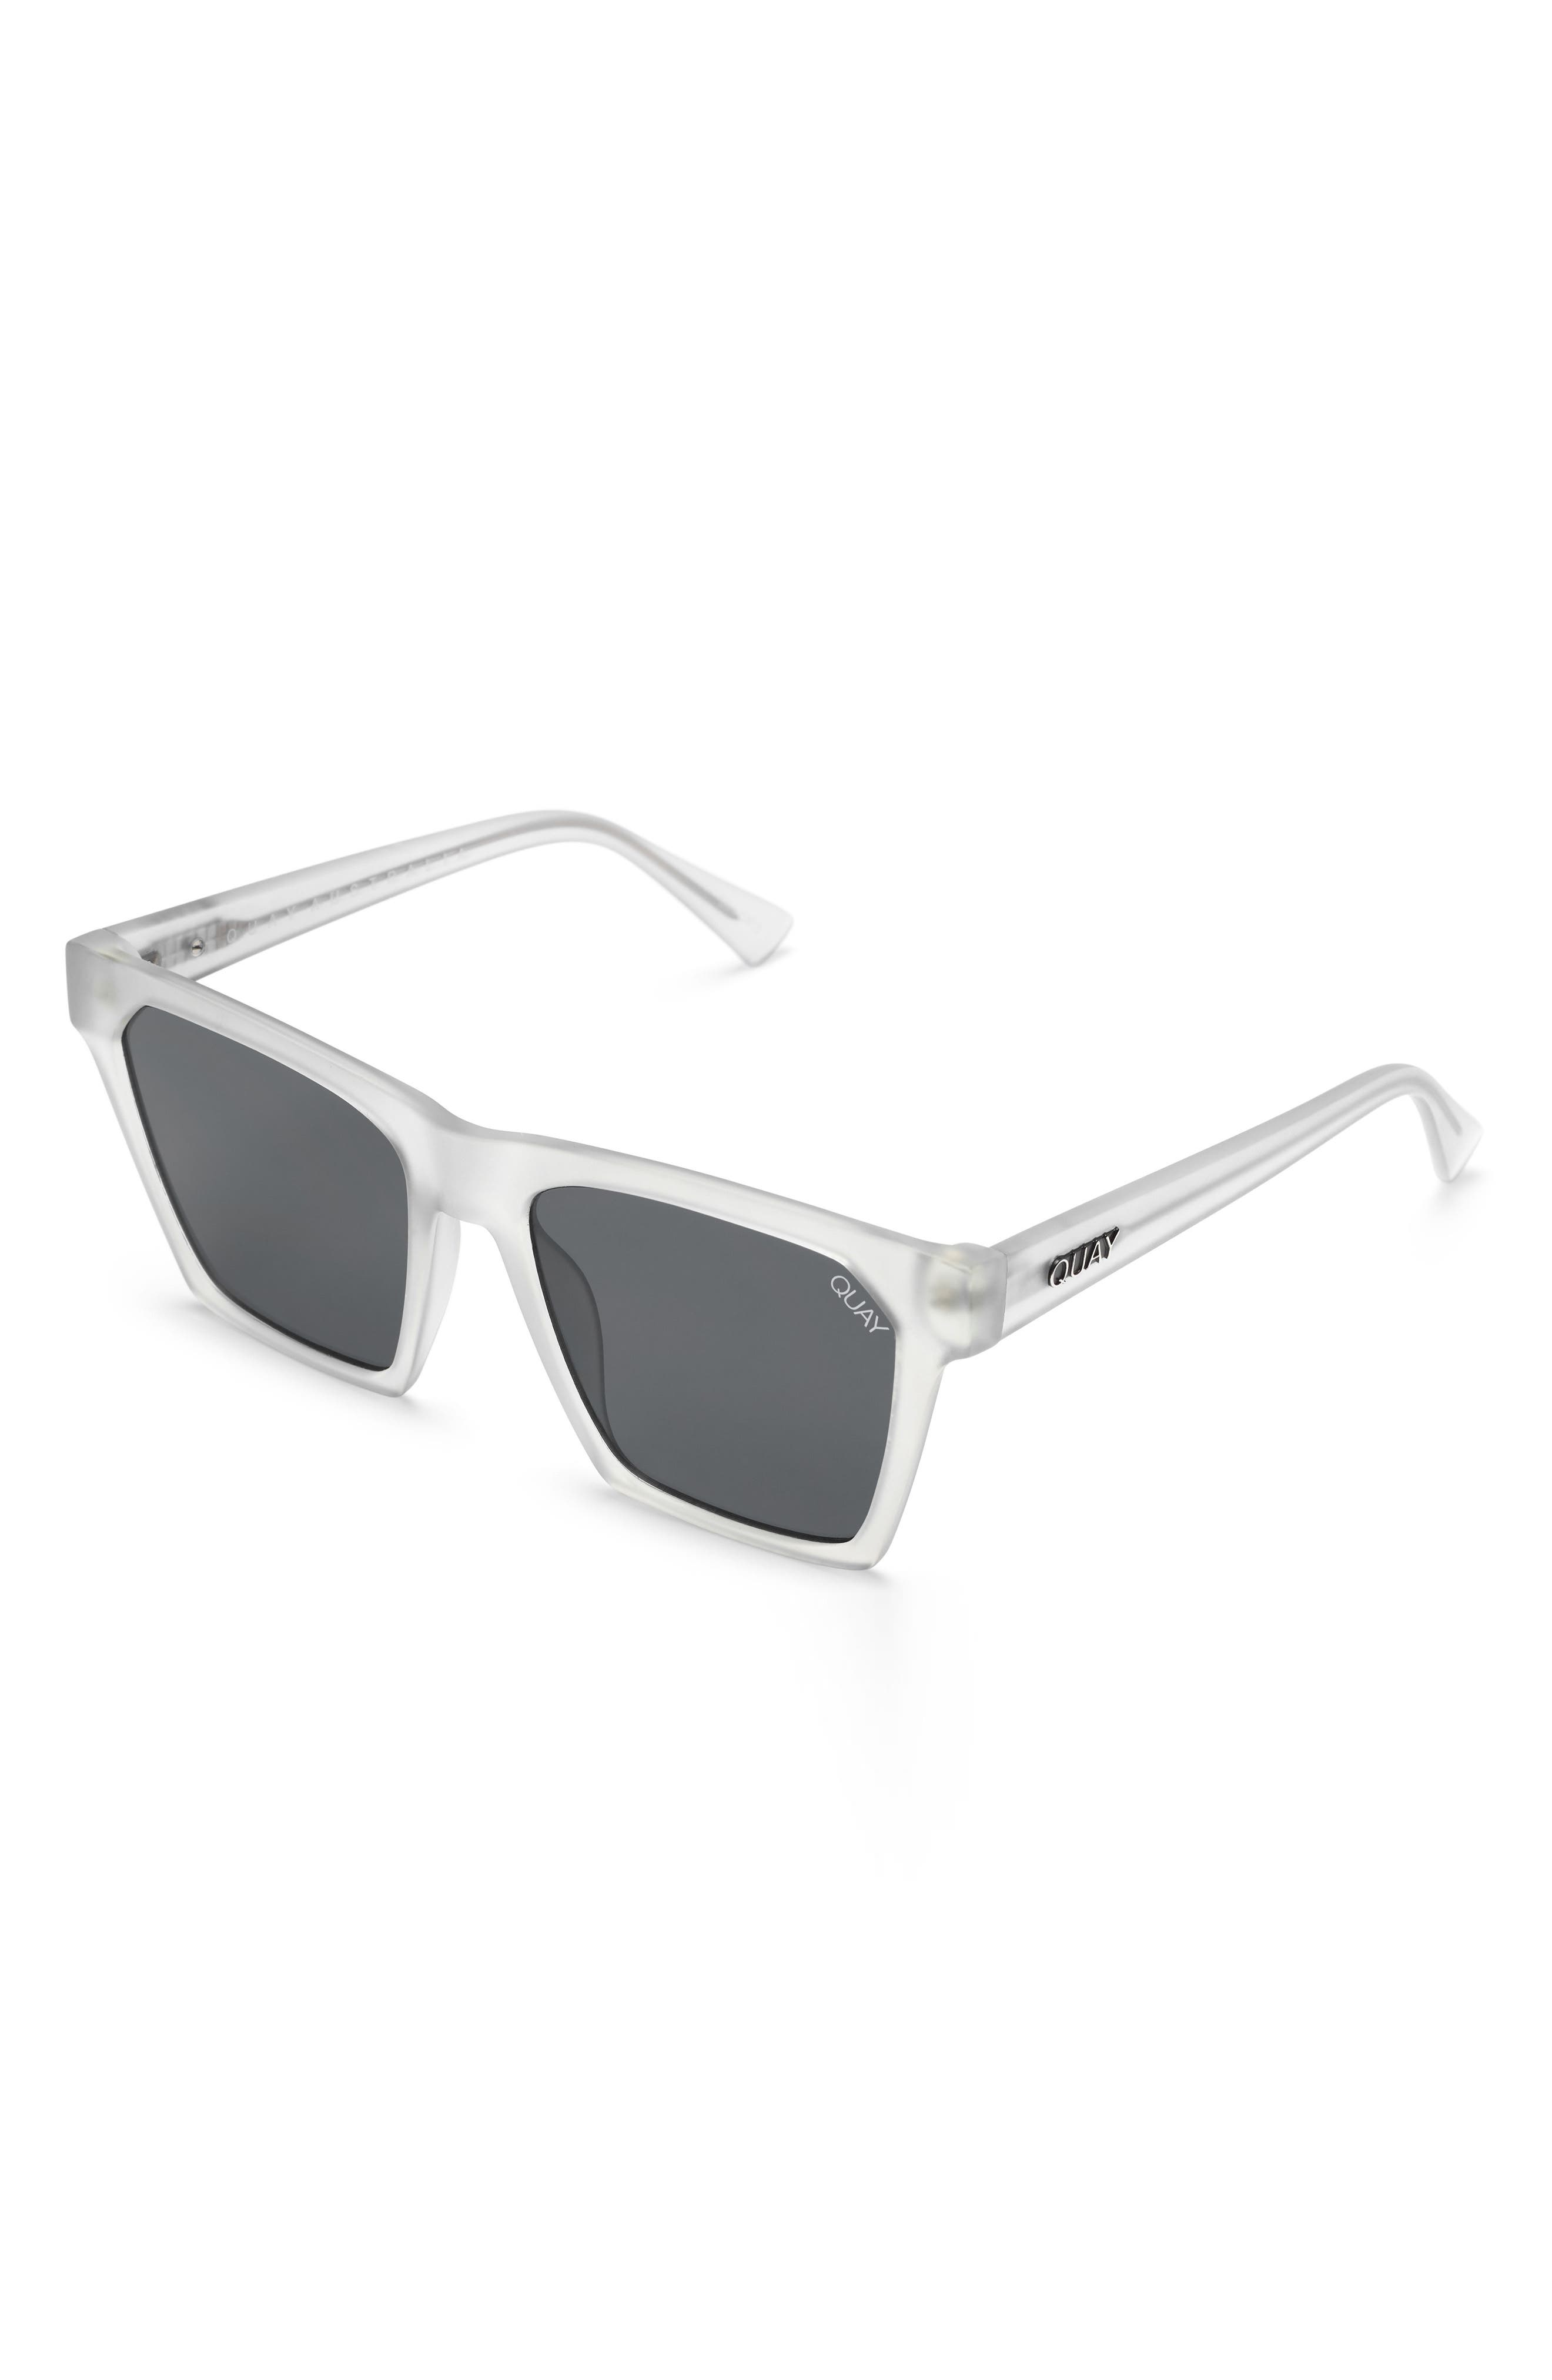 x Missguided Alright 55mm Square Sunglasses,                             Alternate thumbnail 5, color,                             White/ Smoke